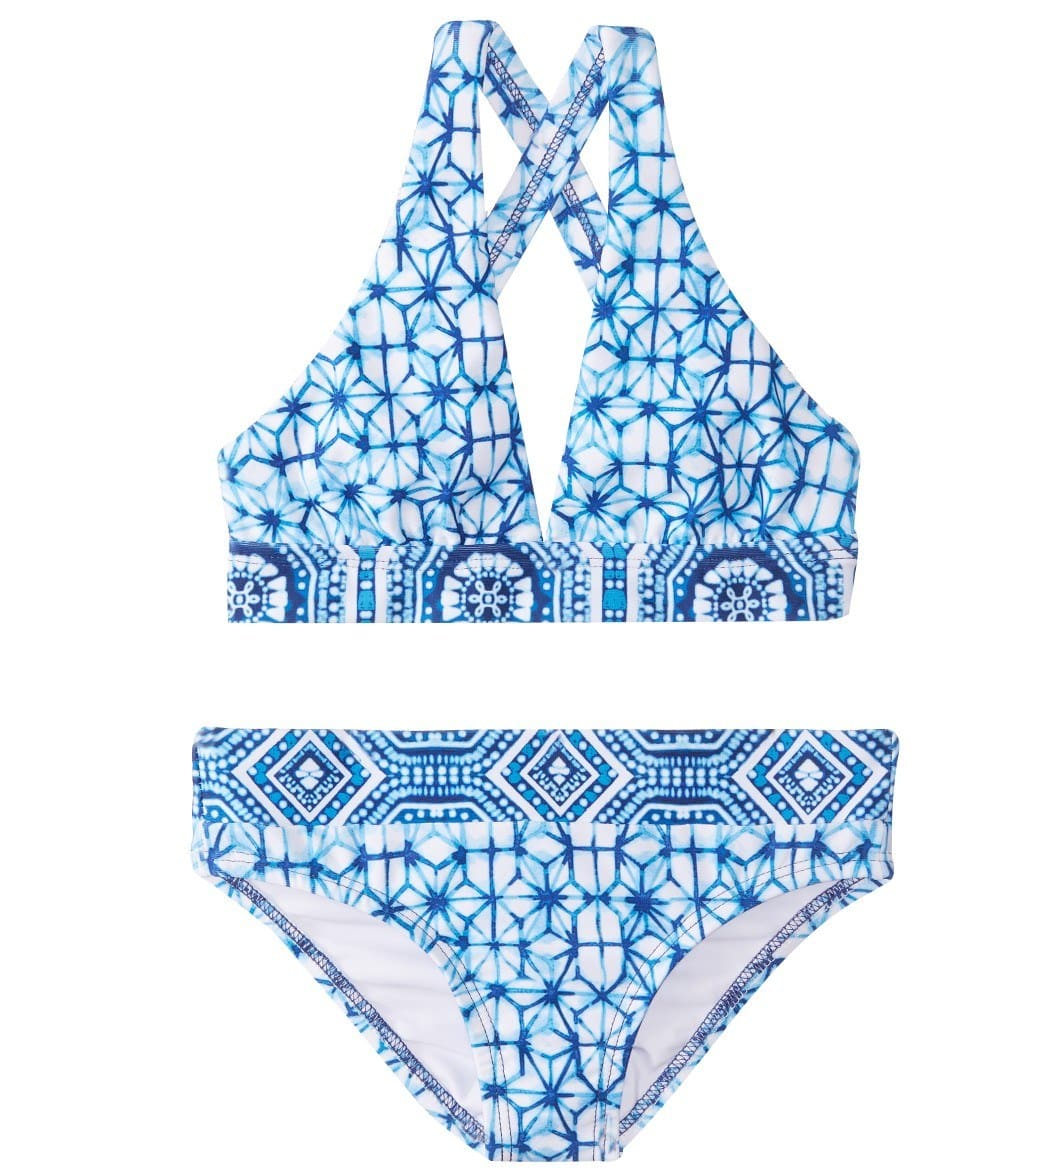 4a579ae9f8c Next Girls' Spice Market Wide Band Halter Two Piece BikiniSet (Big Kid) at  SwimOutlet.com - Free Shipping